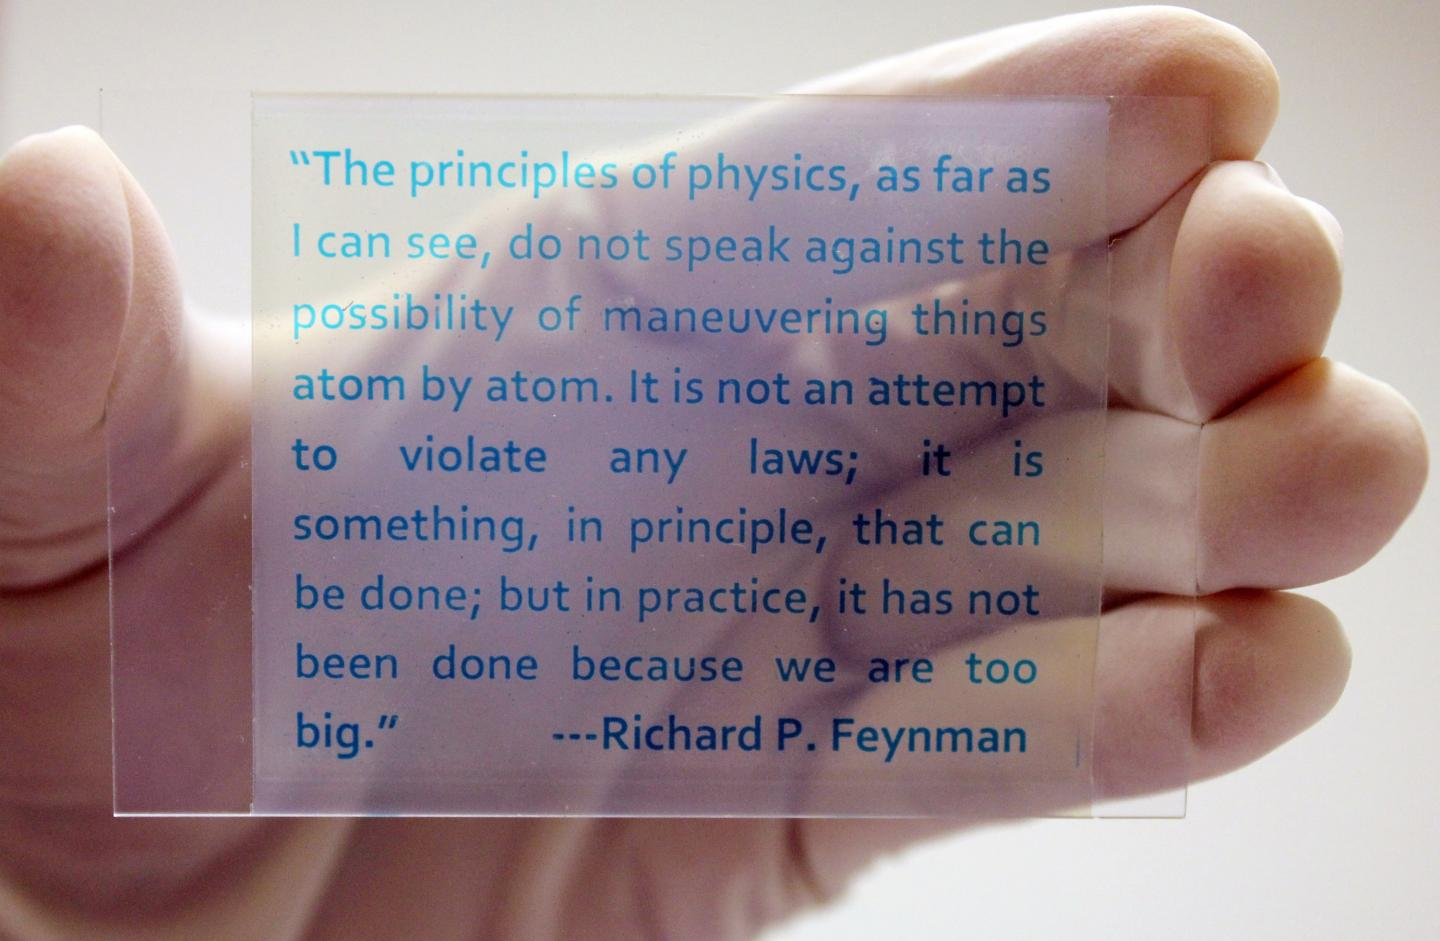 Scientists have created rewritable paper made from redox dyes and a plastic or glass film